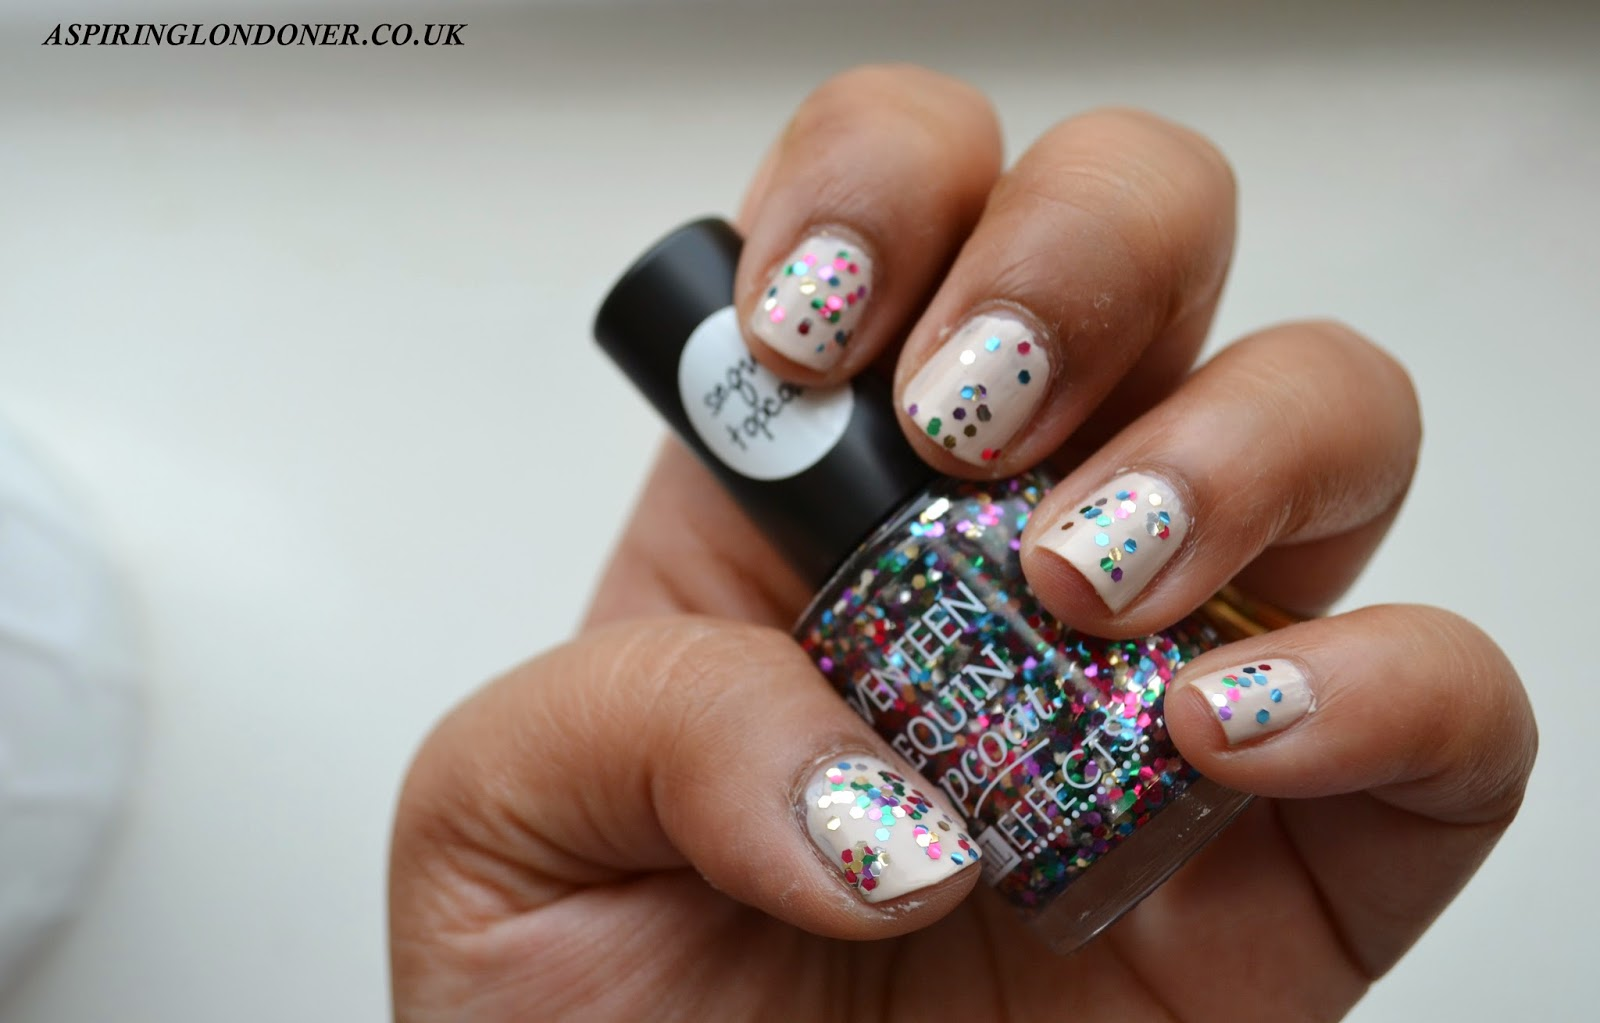 Seventeen Nail Effects Sequin Top Coat Limited Edition - Aspiring Londoner